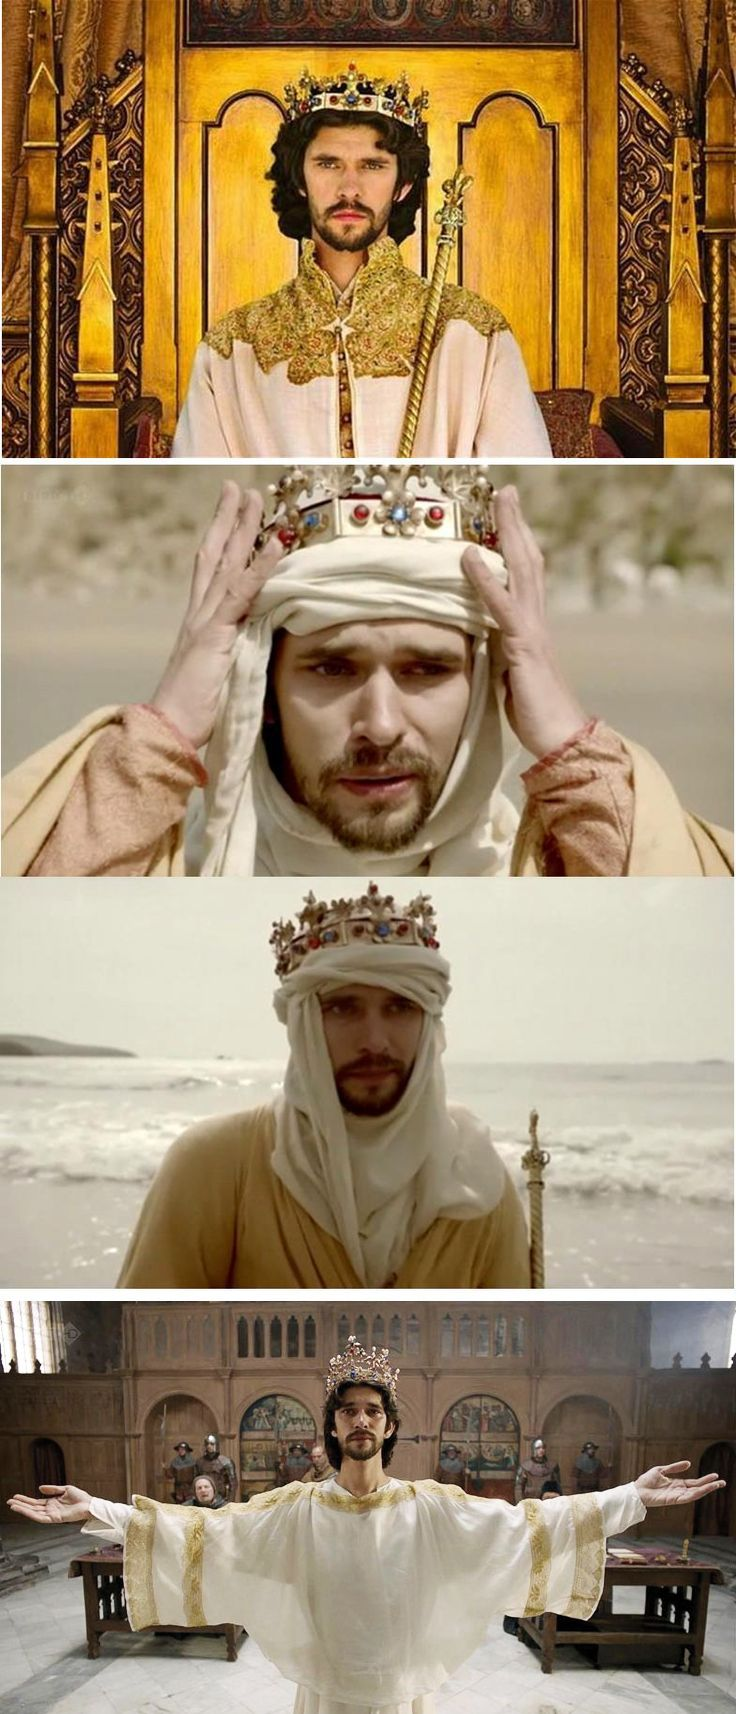 Ben Whishaw as Richard II in BBC series 2012, The Hollow Crown